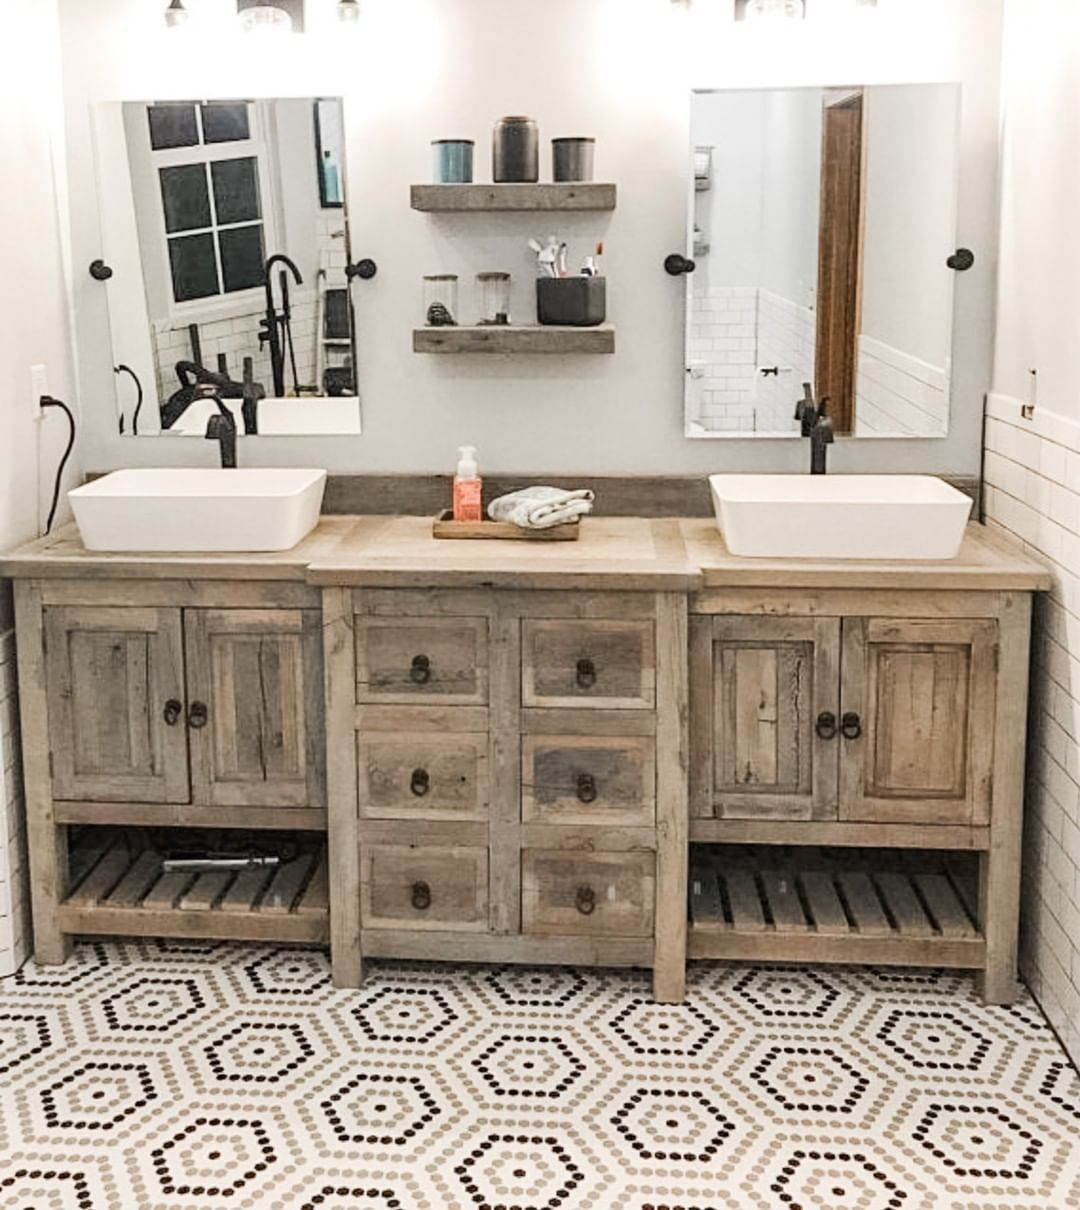 52 Rustic Bathrooms That Will Inspire Your Next Makeover Modern Rustic Bathroom Ideas Rustic In 2020 Rustic Bathroom Vanity Diy Rustic Bathrooms Rustic Bathroom Sinks